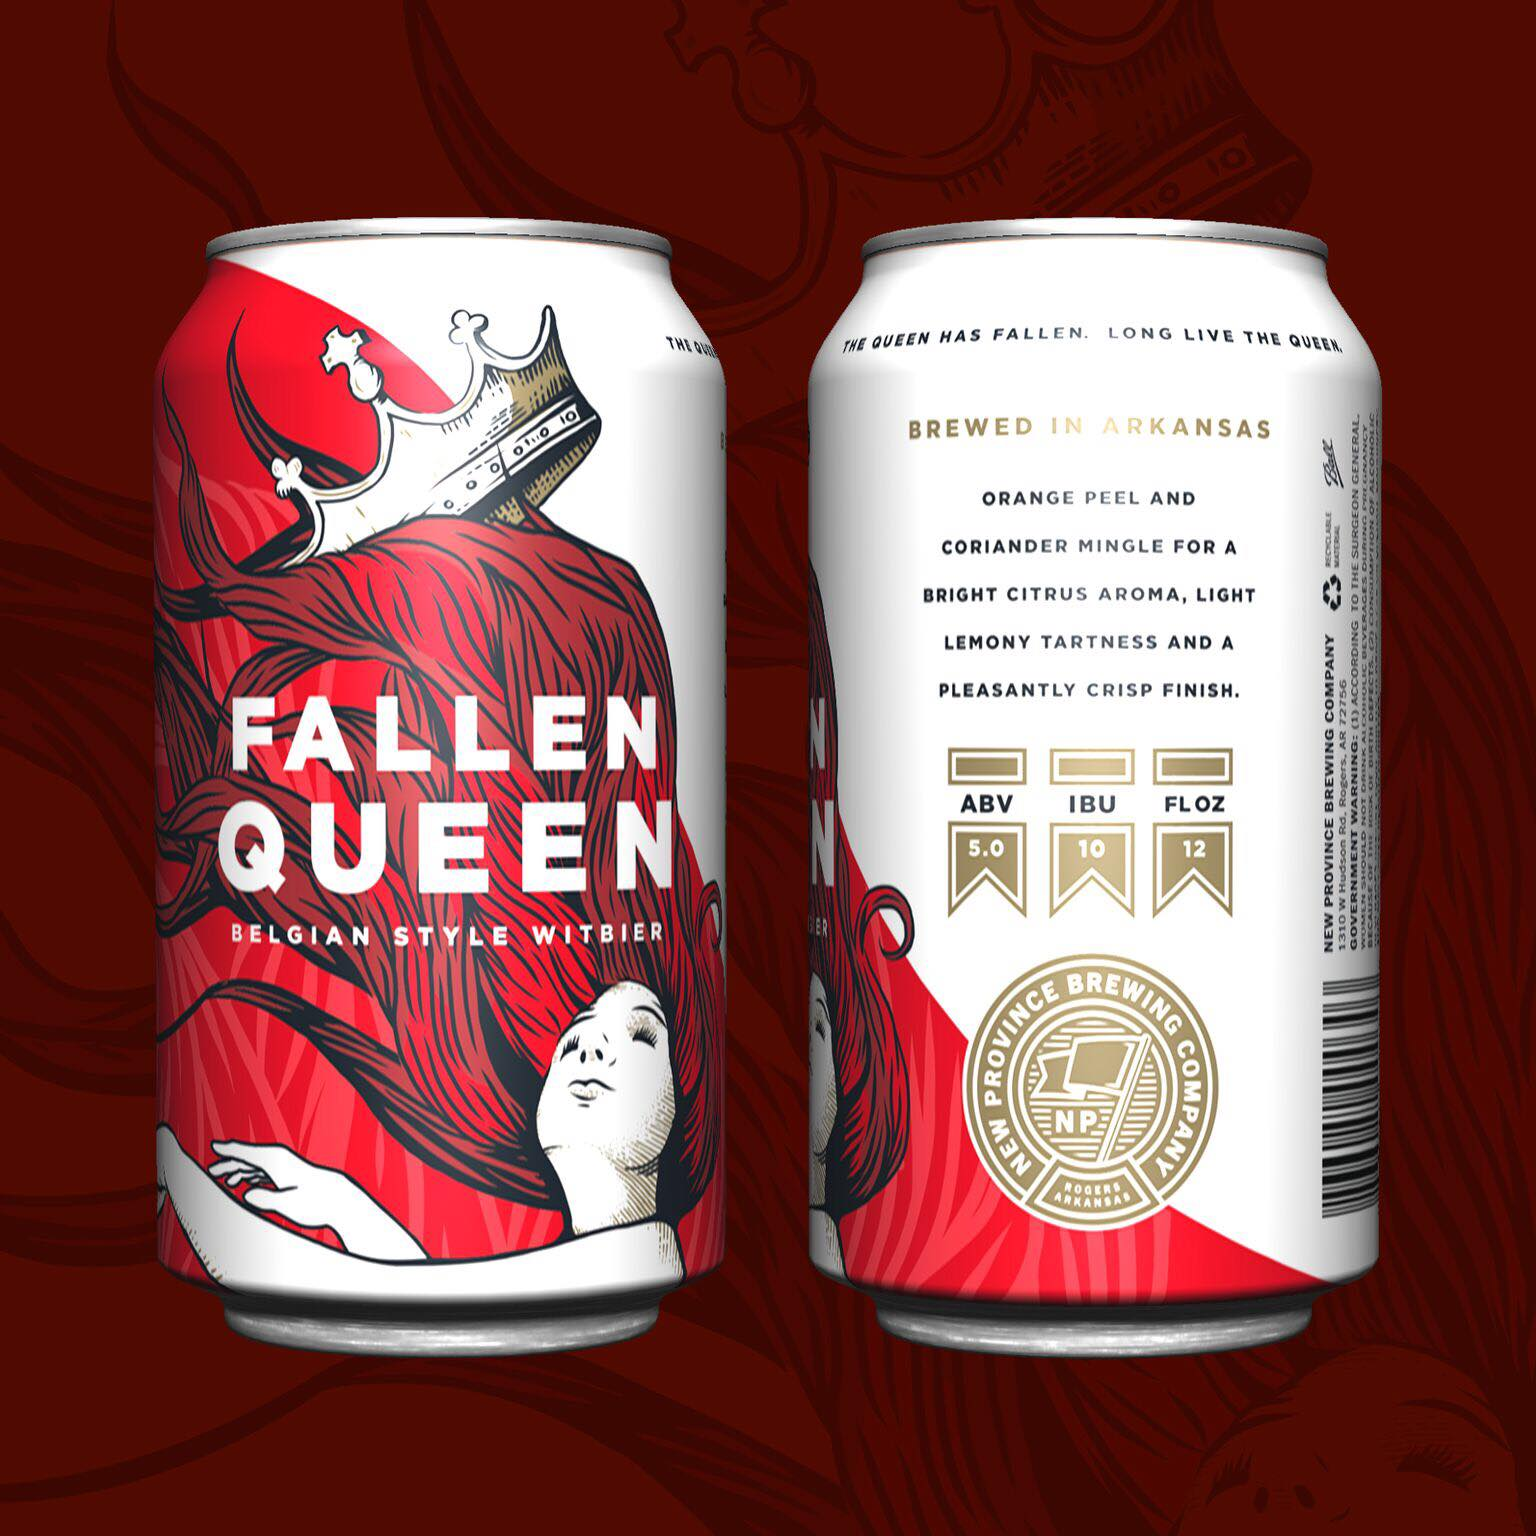 The cans for Fallen Queen remind me of the mythical land of Narnia. Photo courtesy New Province Brewing Co.